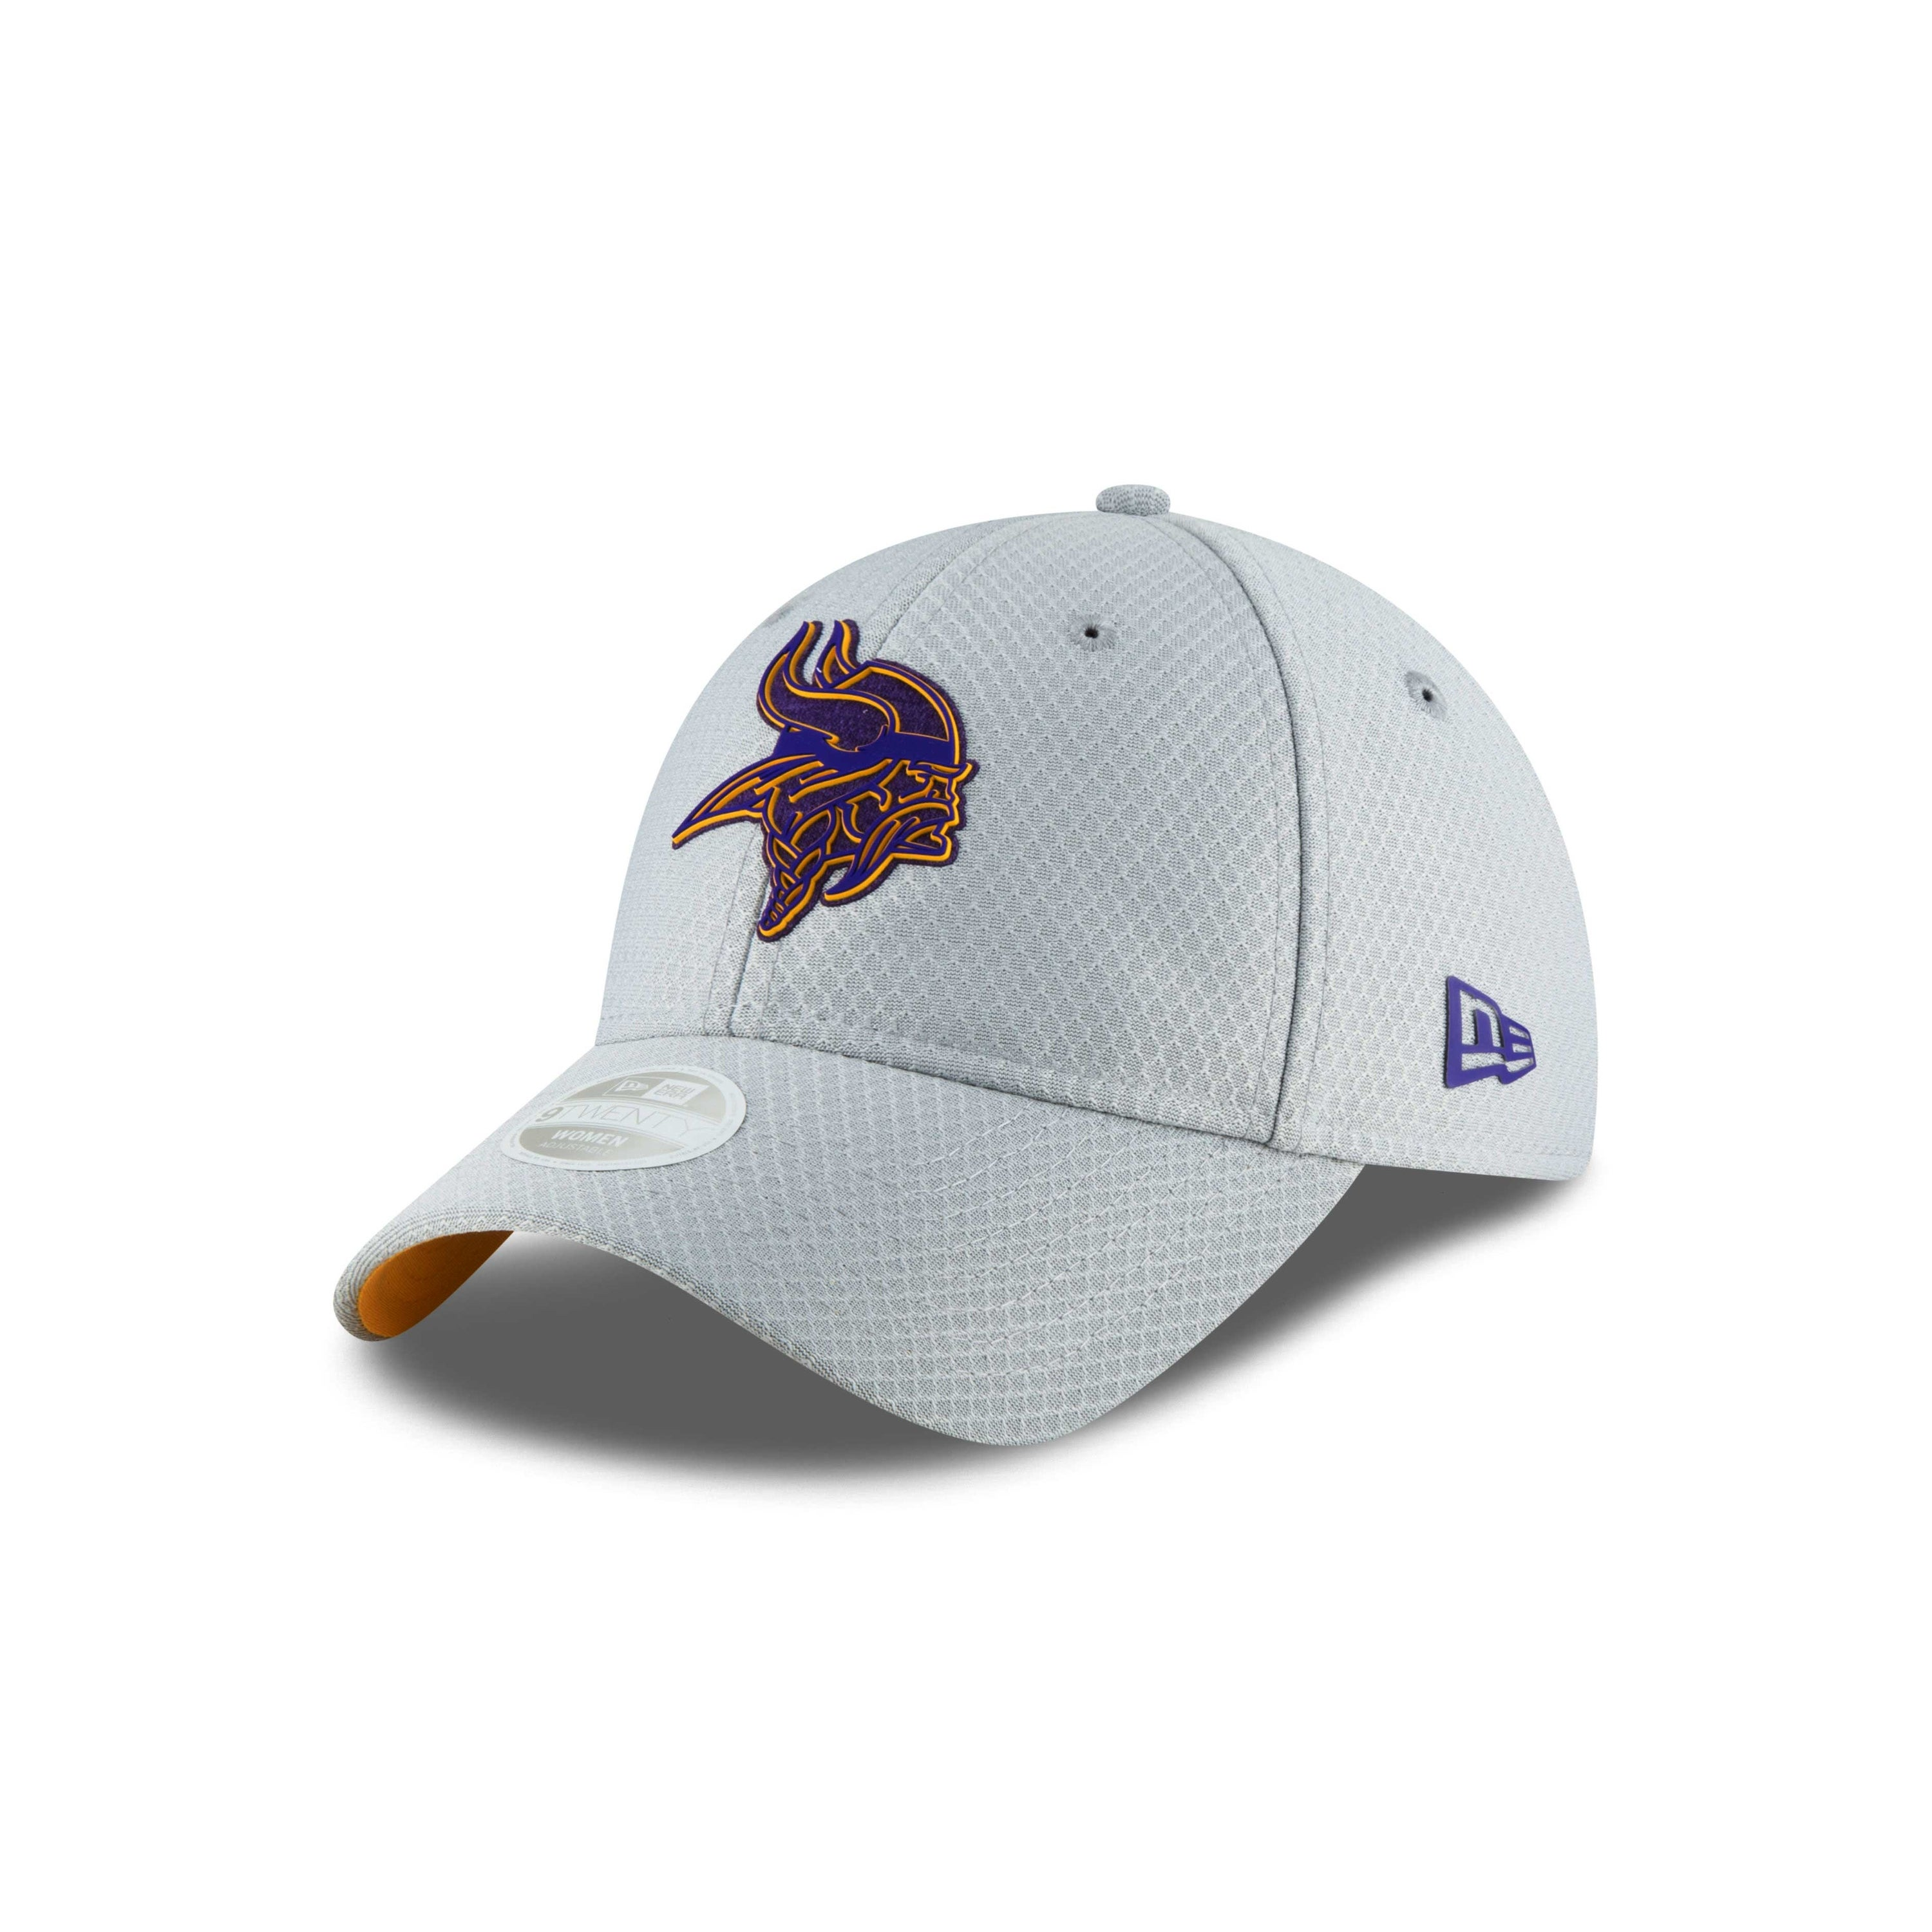 various colors 51423 6a846 Buy New Era Women s Hats Online at Overstock   Our Best Hats Deals